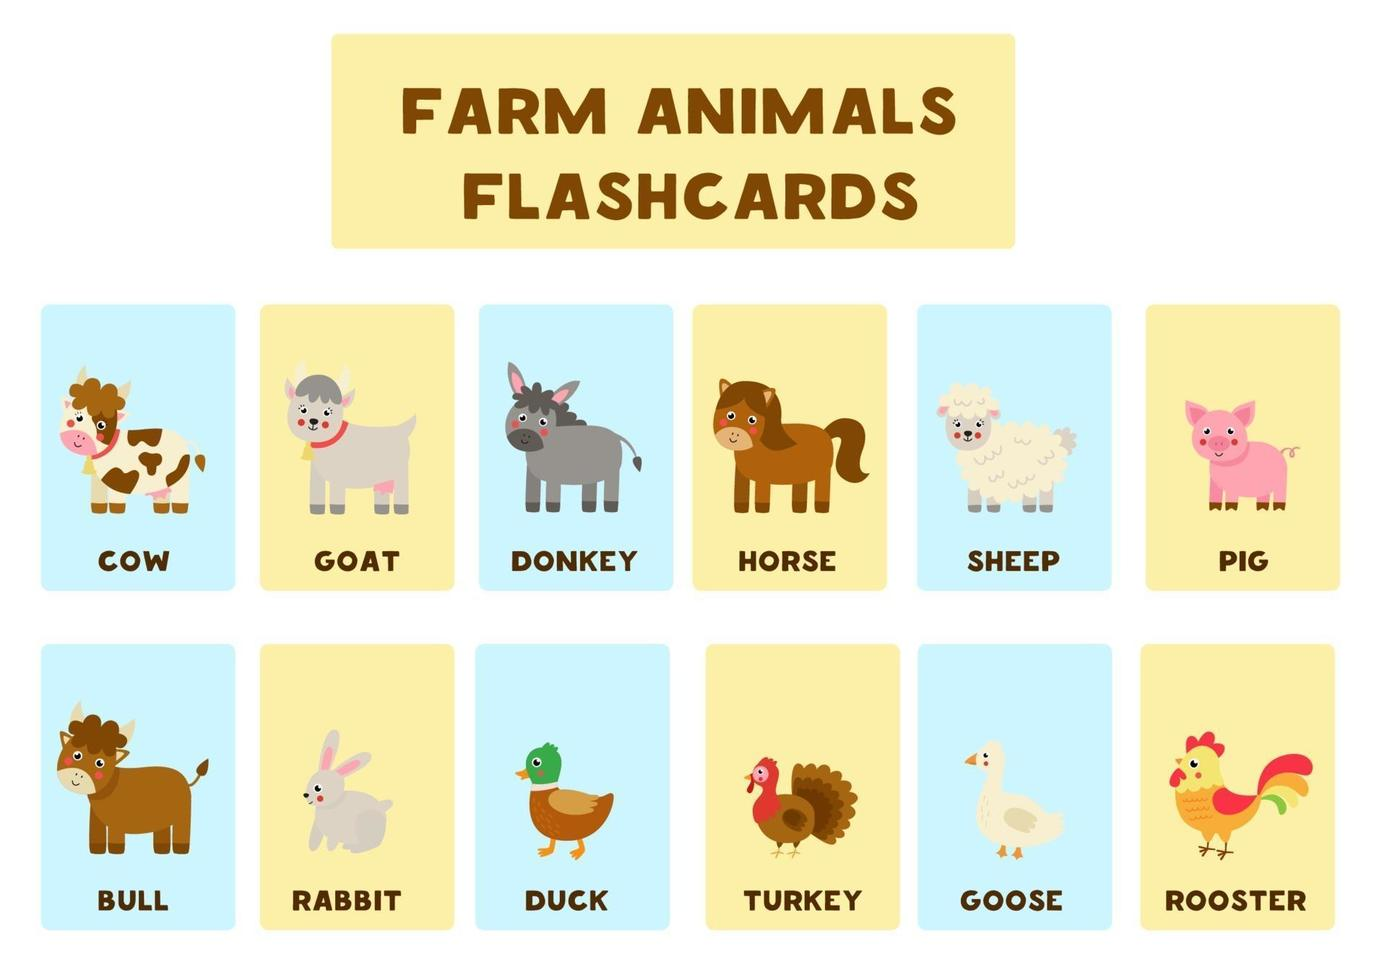 Farm animals with names. Flash cards for kids. vector